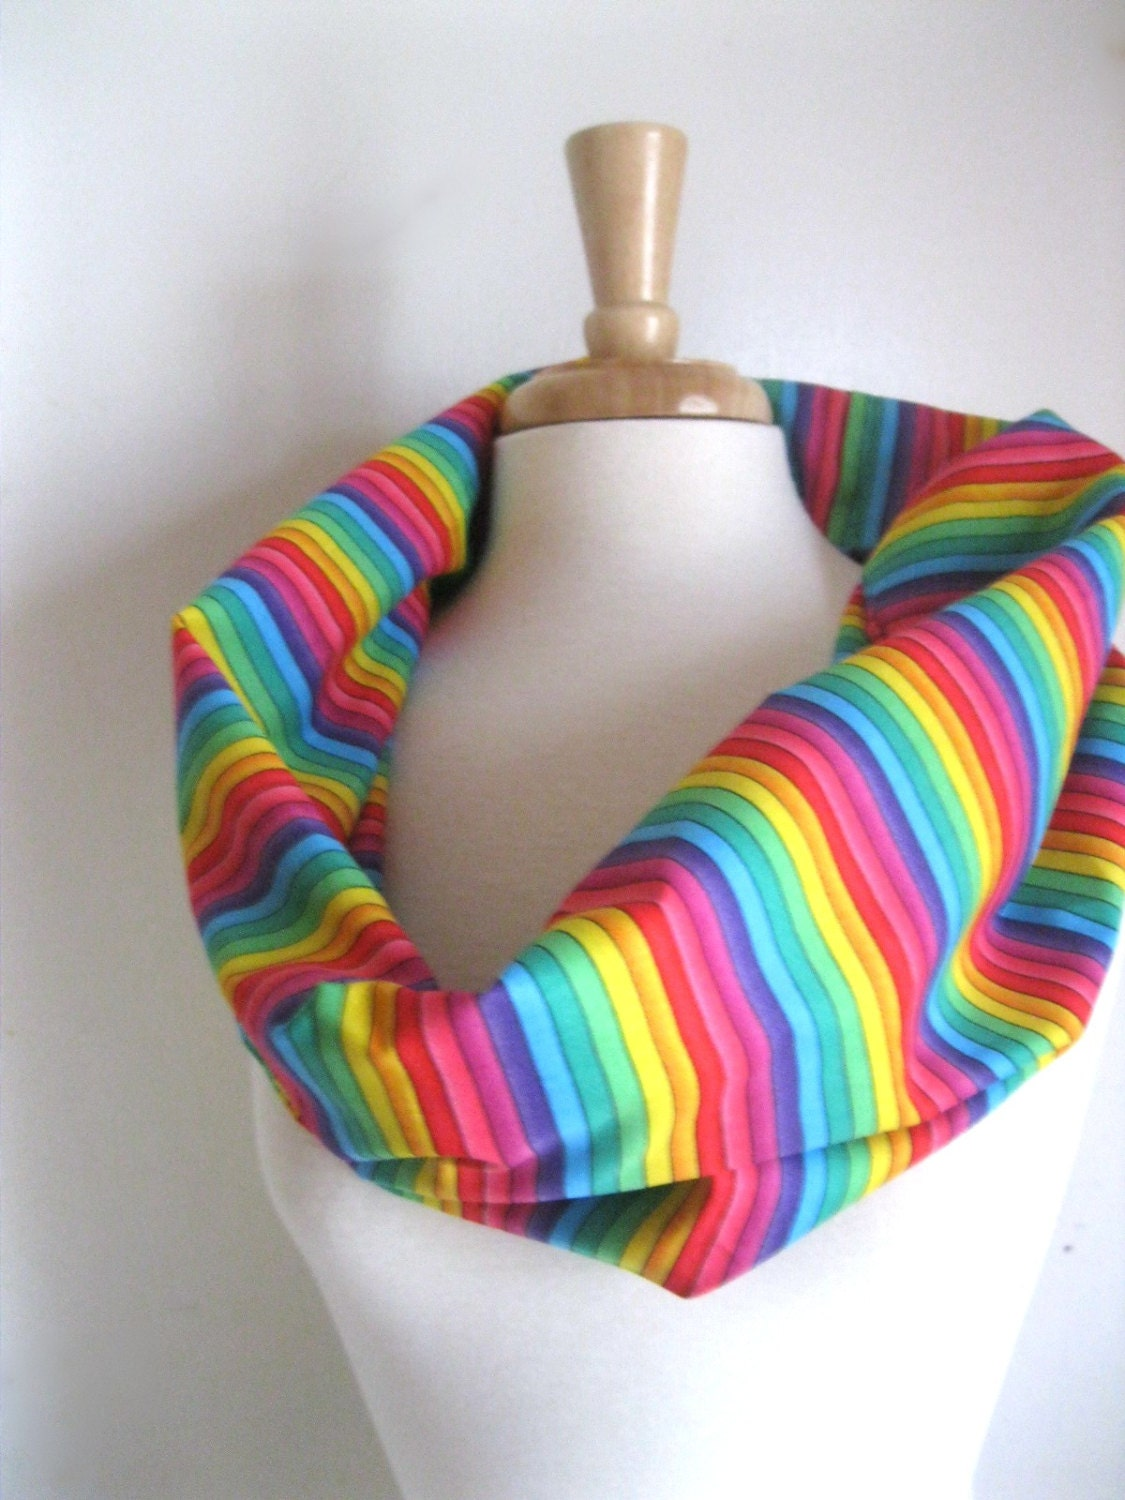 Rainbow Pride Infinity Scarf in Circle Scarf ROYGBIV Rainbow Brite  Lightweight Cotton Infinity Scarf - SewEcological